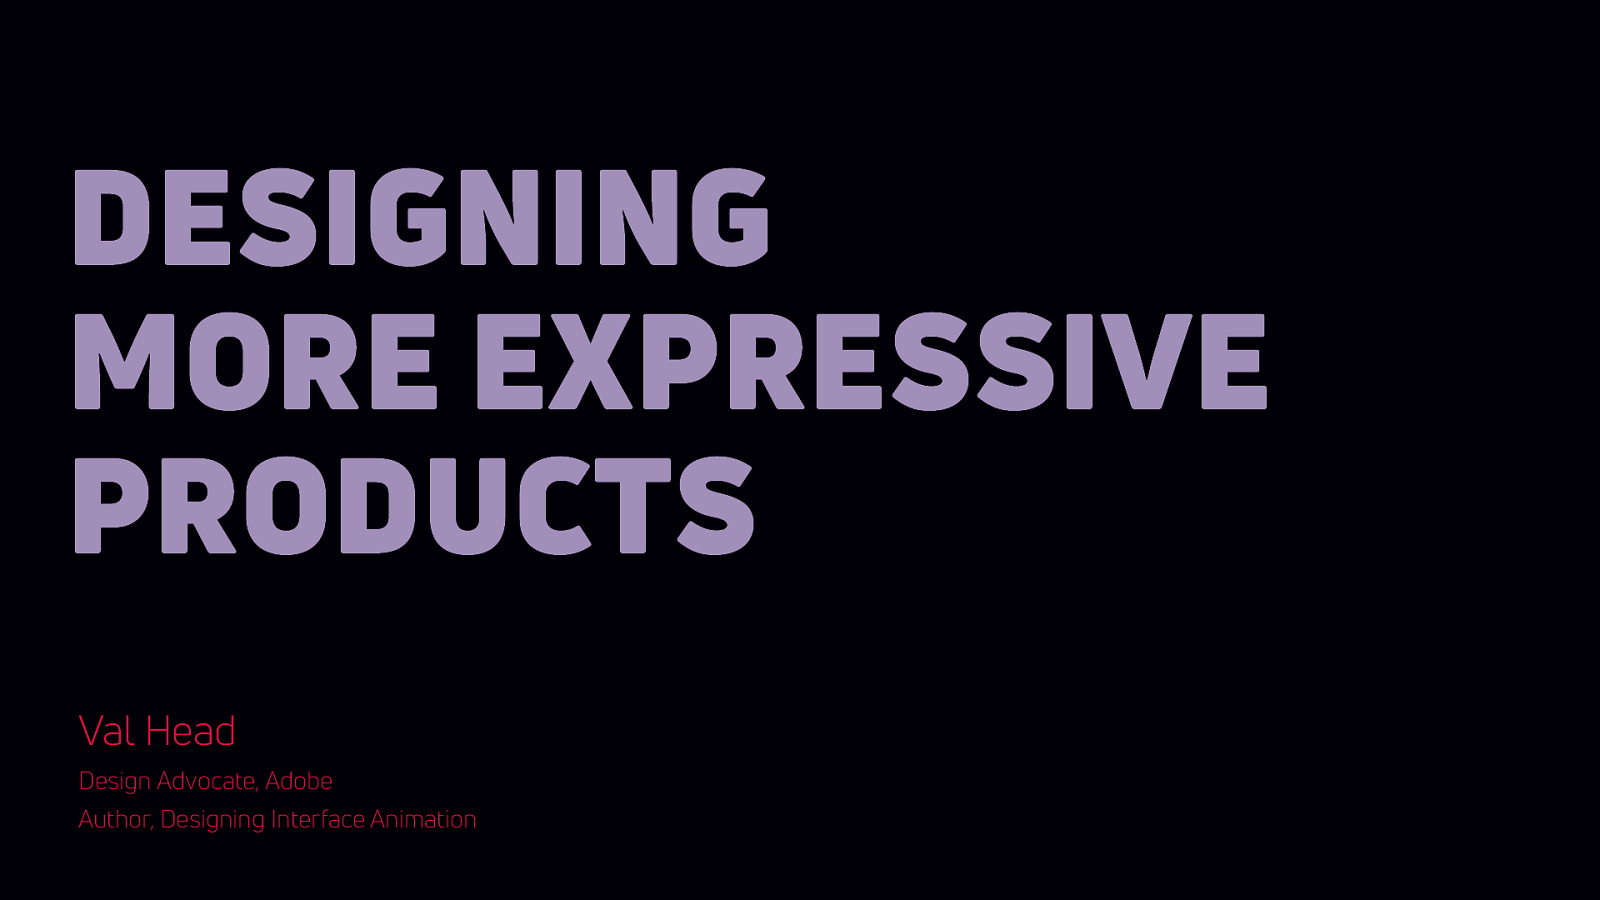 Designing More Expressive Products (with Motion and Sound)